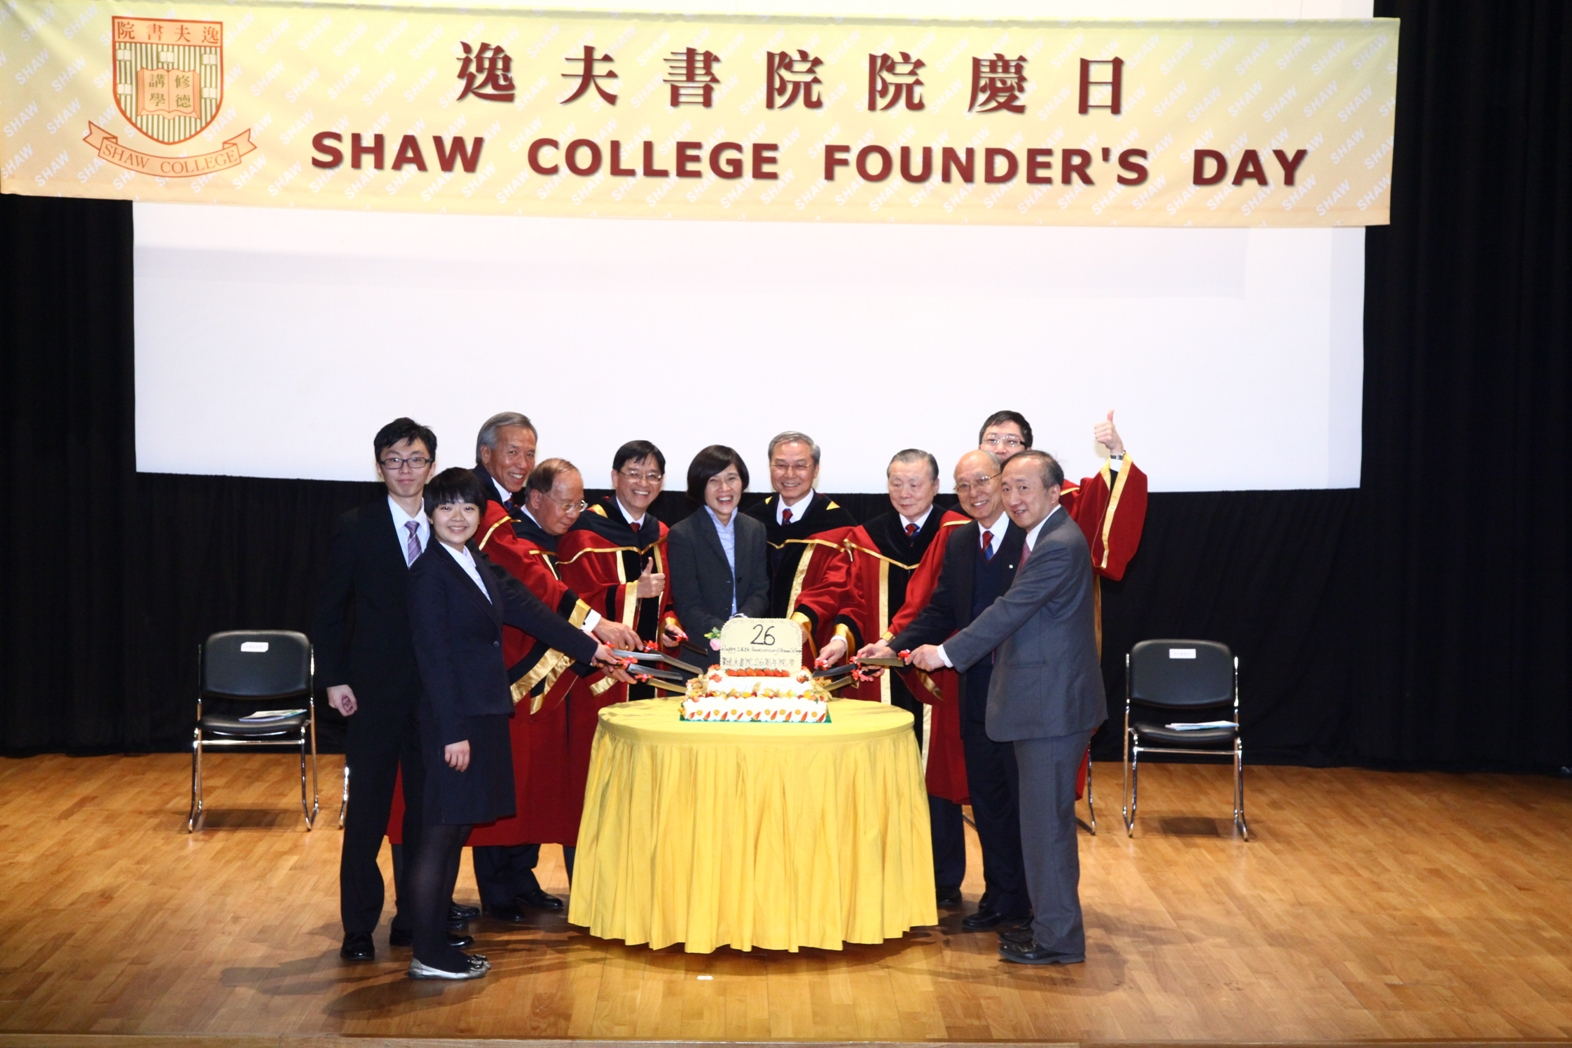 26th Founder's Day Celebration Ceremony of CUHK Shaw College